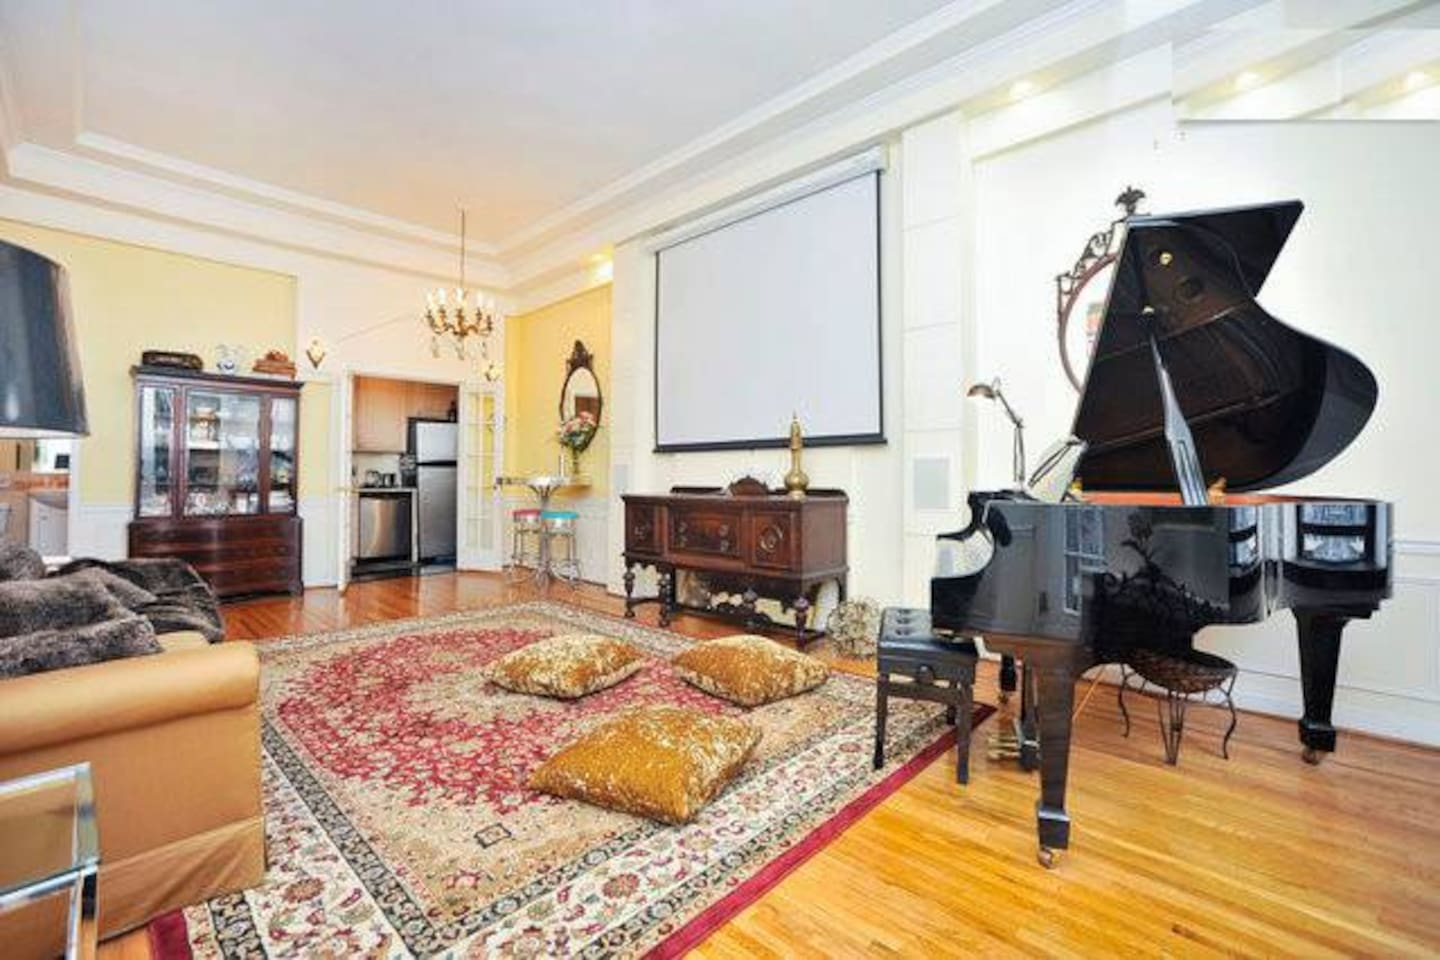 Huge living room with high ceiling, lots of light, and extra charge options - home theater system and Grand Piano!